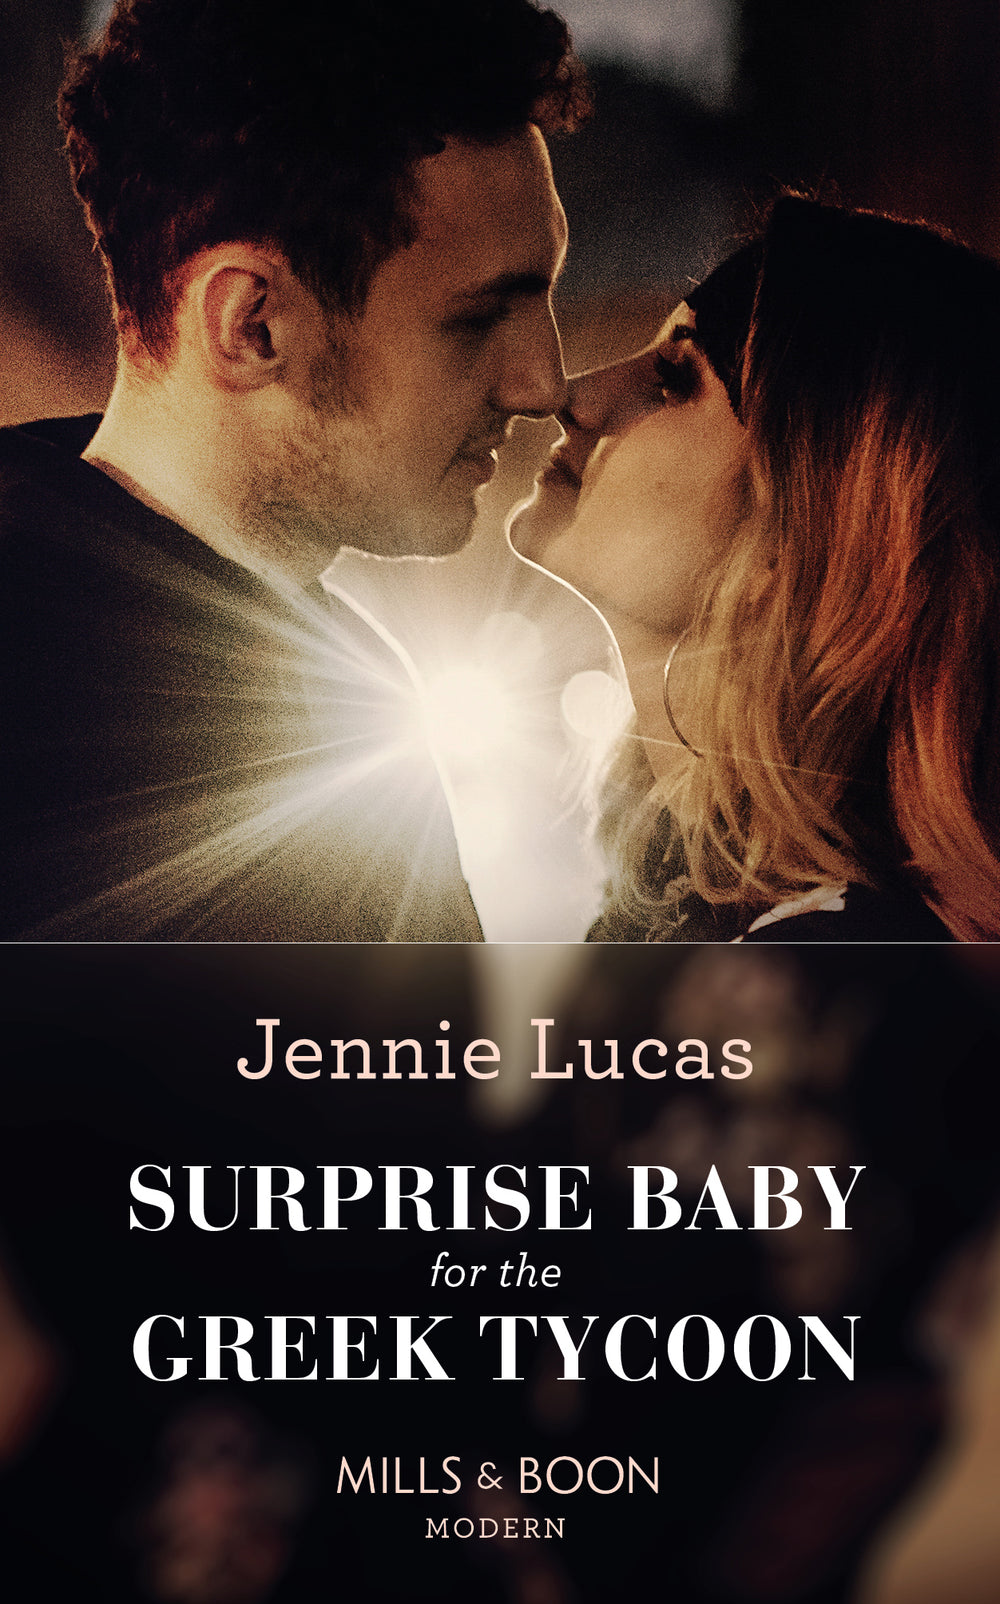 Surprise Baby for the Greek Tycoon - Chapter 12